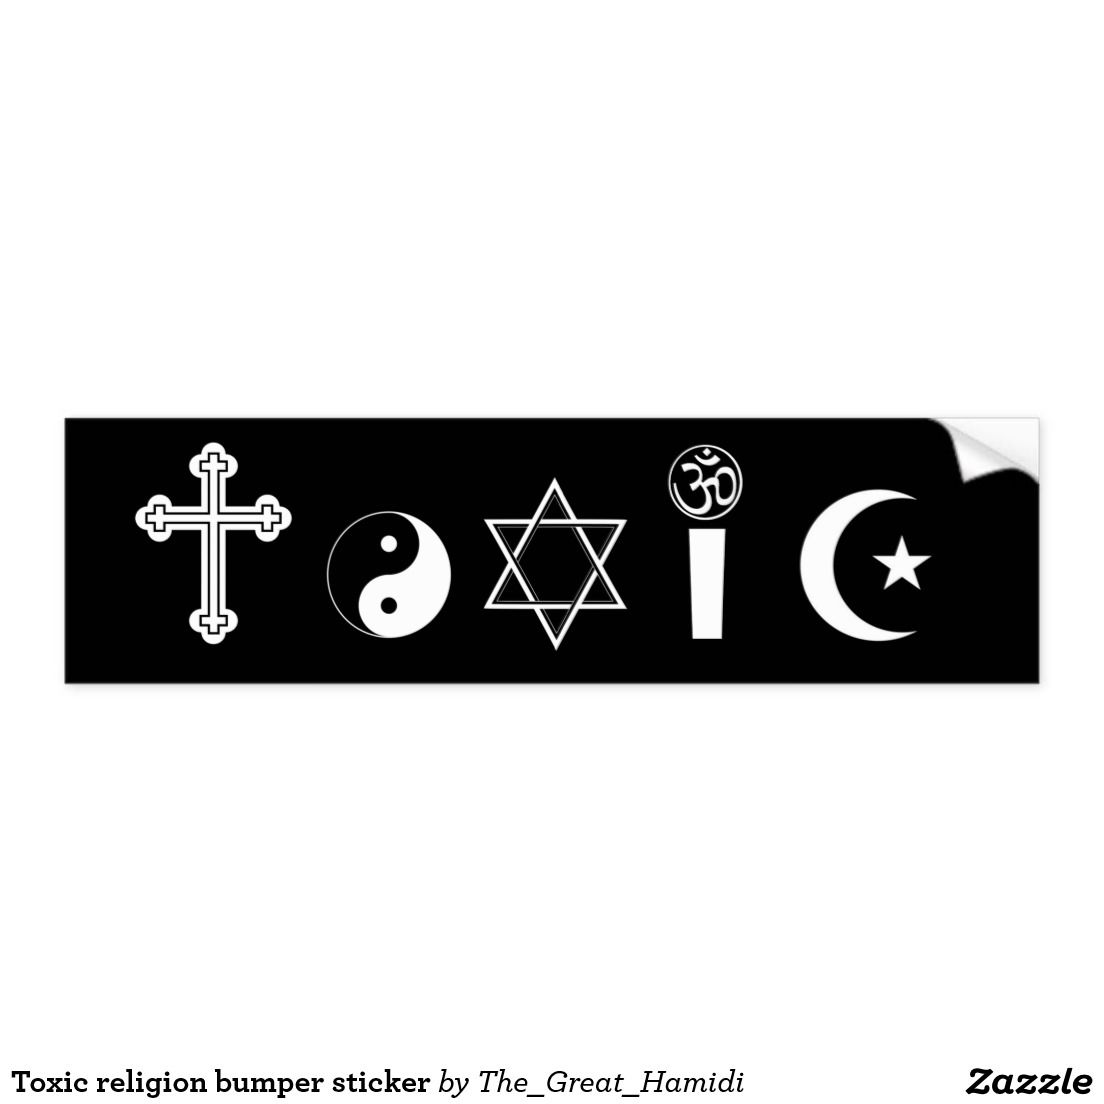 Toxic religion bumper sticker secular humanism winter solstice atheist bumper stickers bullshit